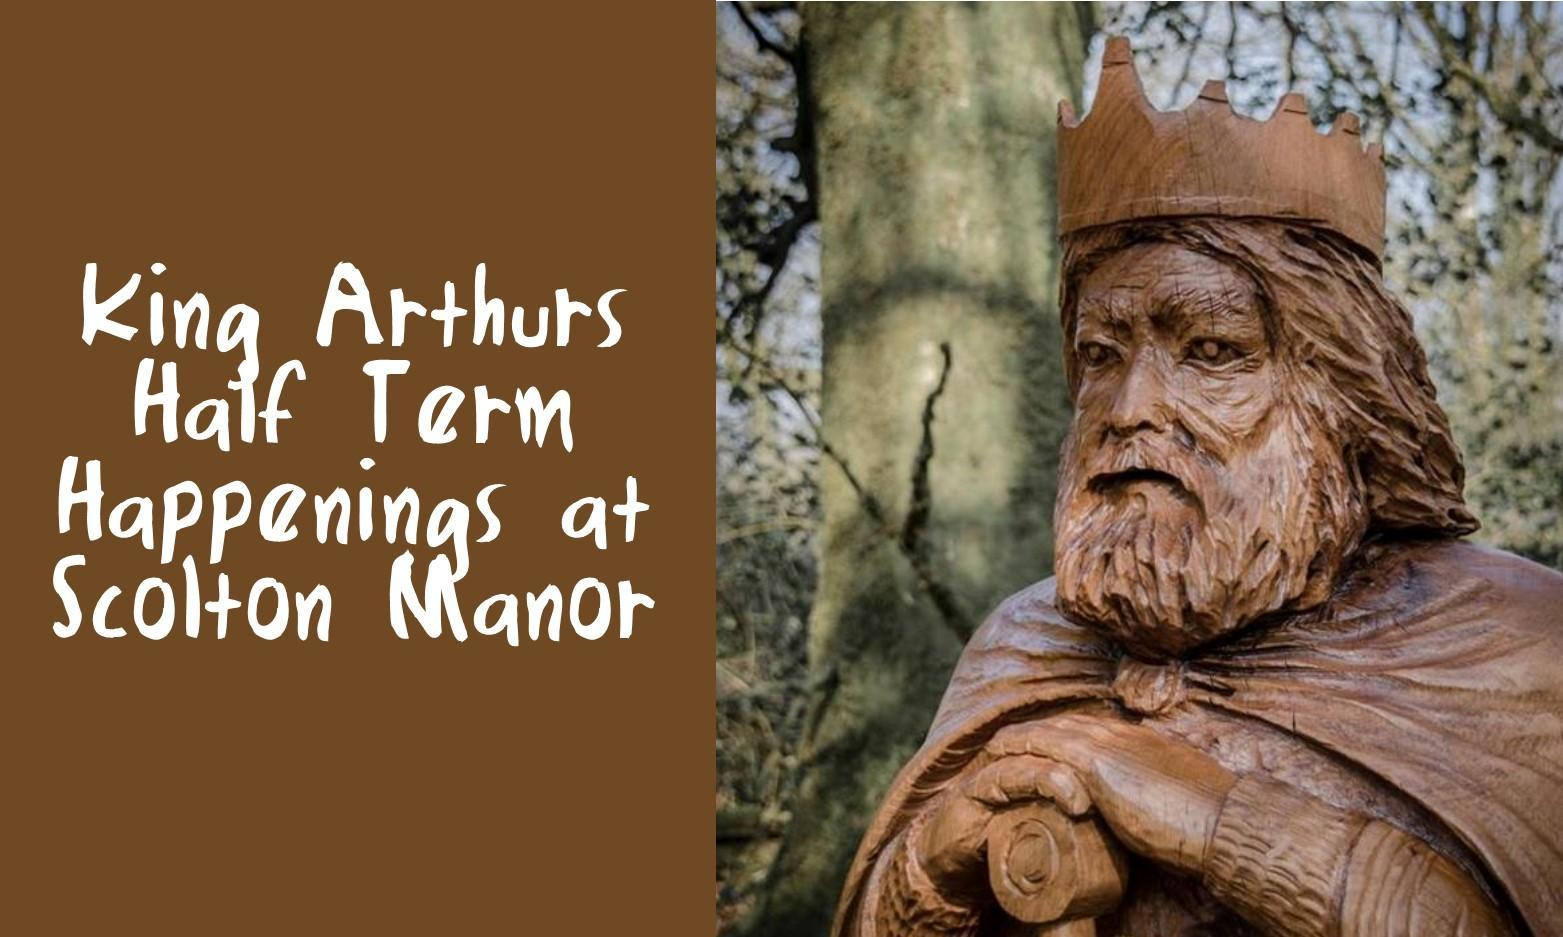 King Arthur's Half Term Happenings at Scolton Manor